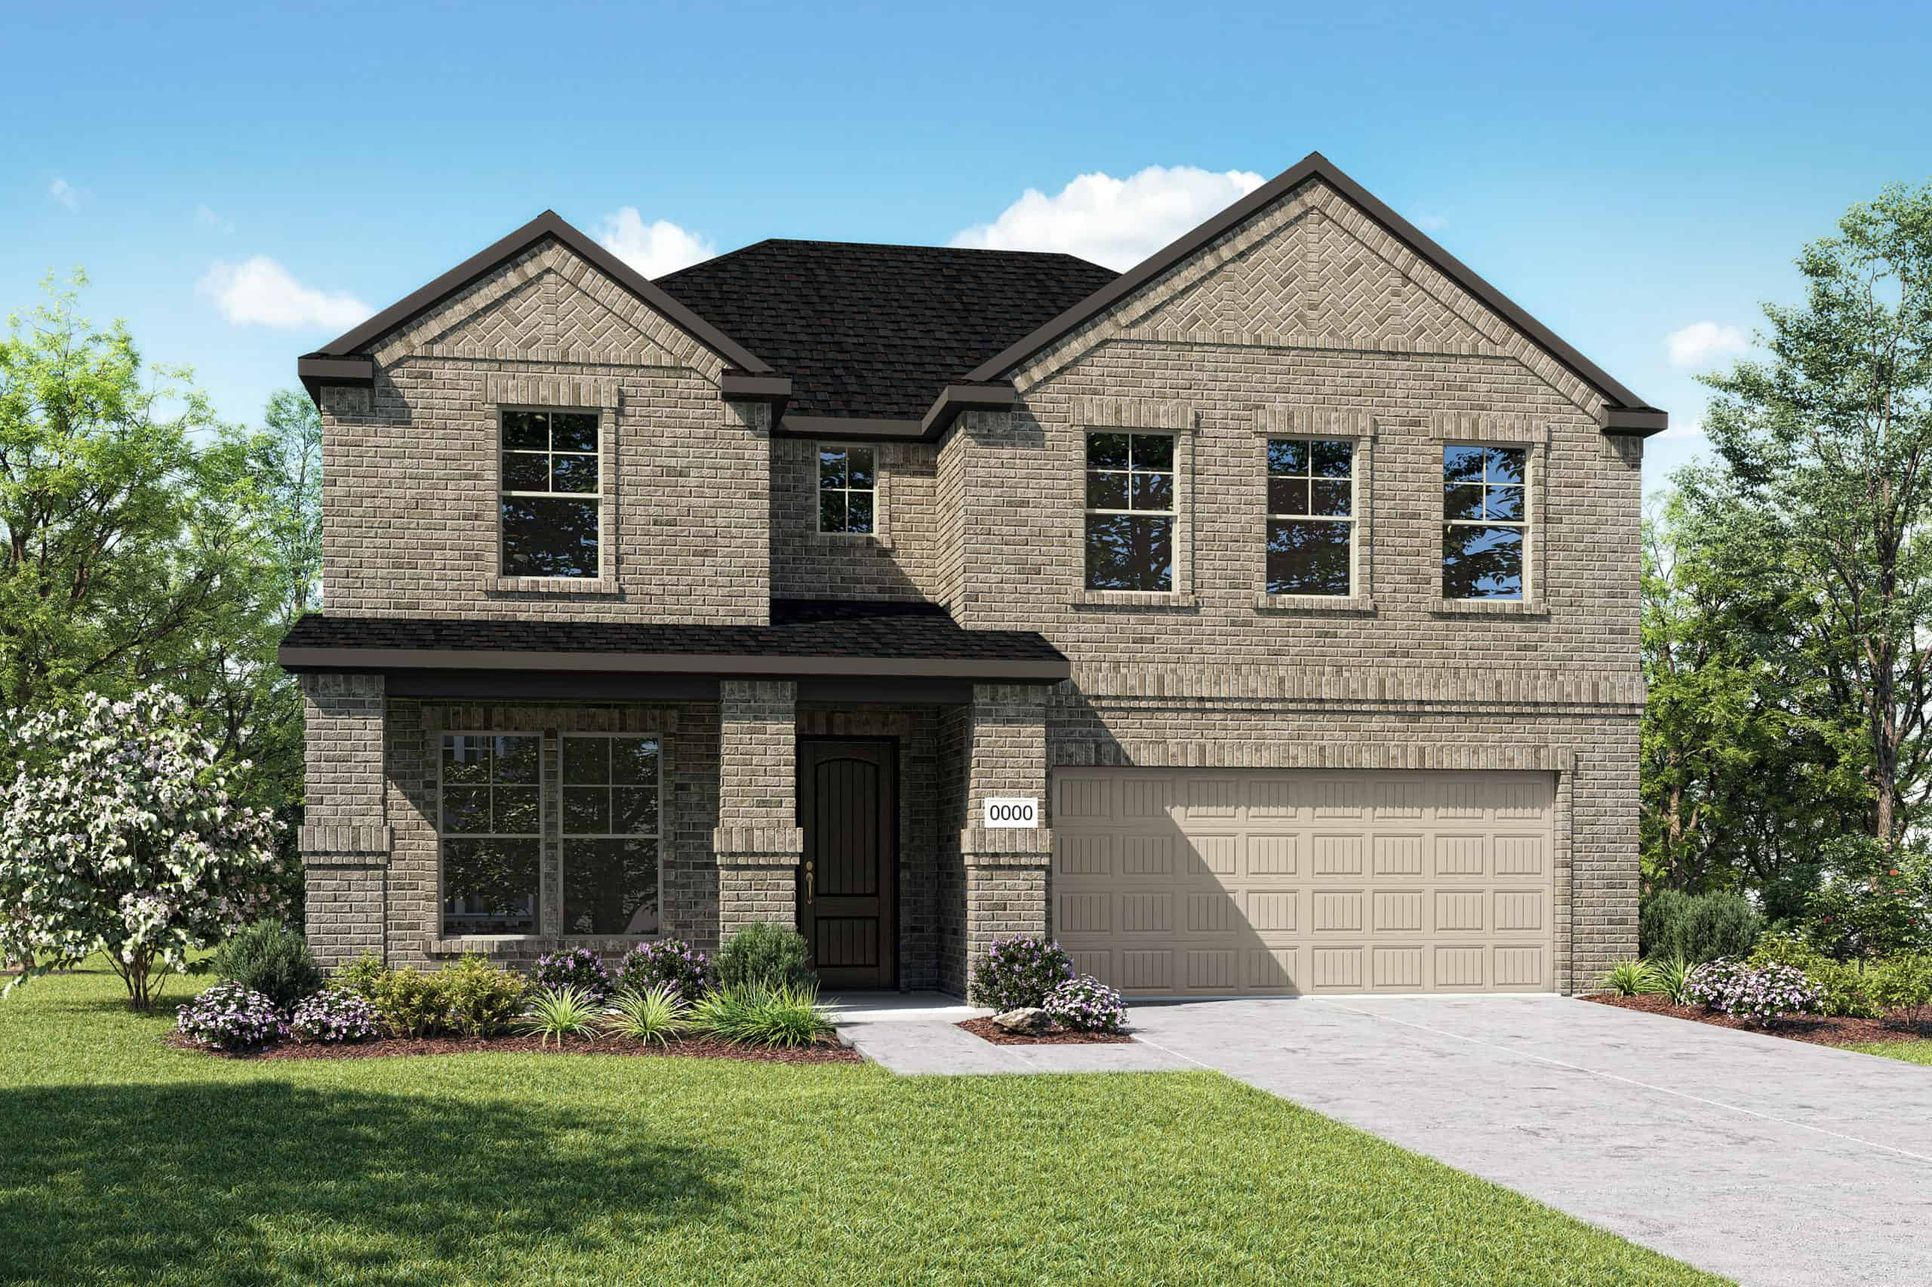 Elevation C:Elevation C is a two story full brick home design with a large front porch featuring brick wrapped c